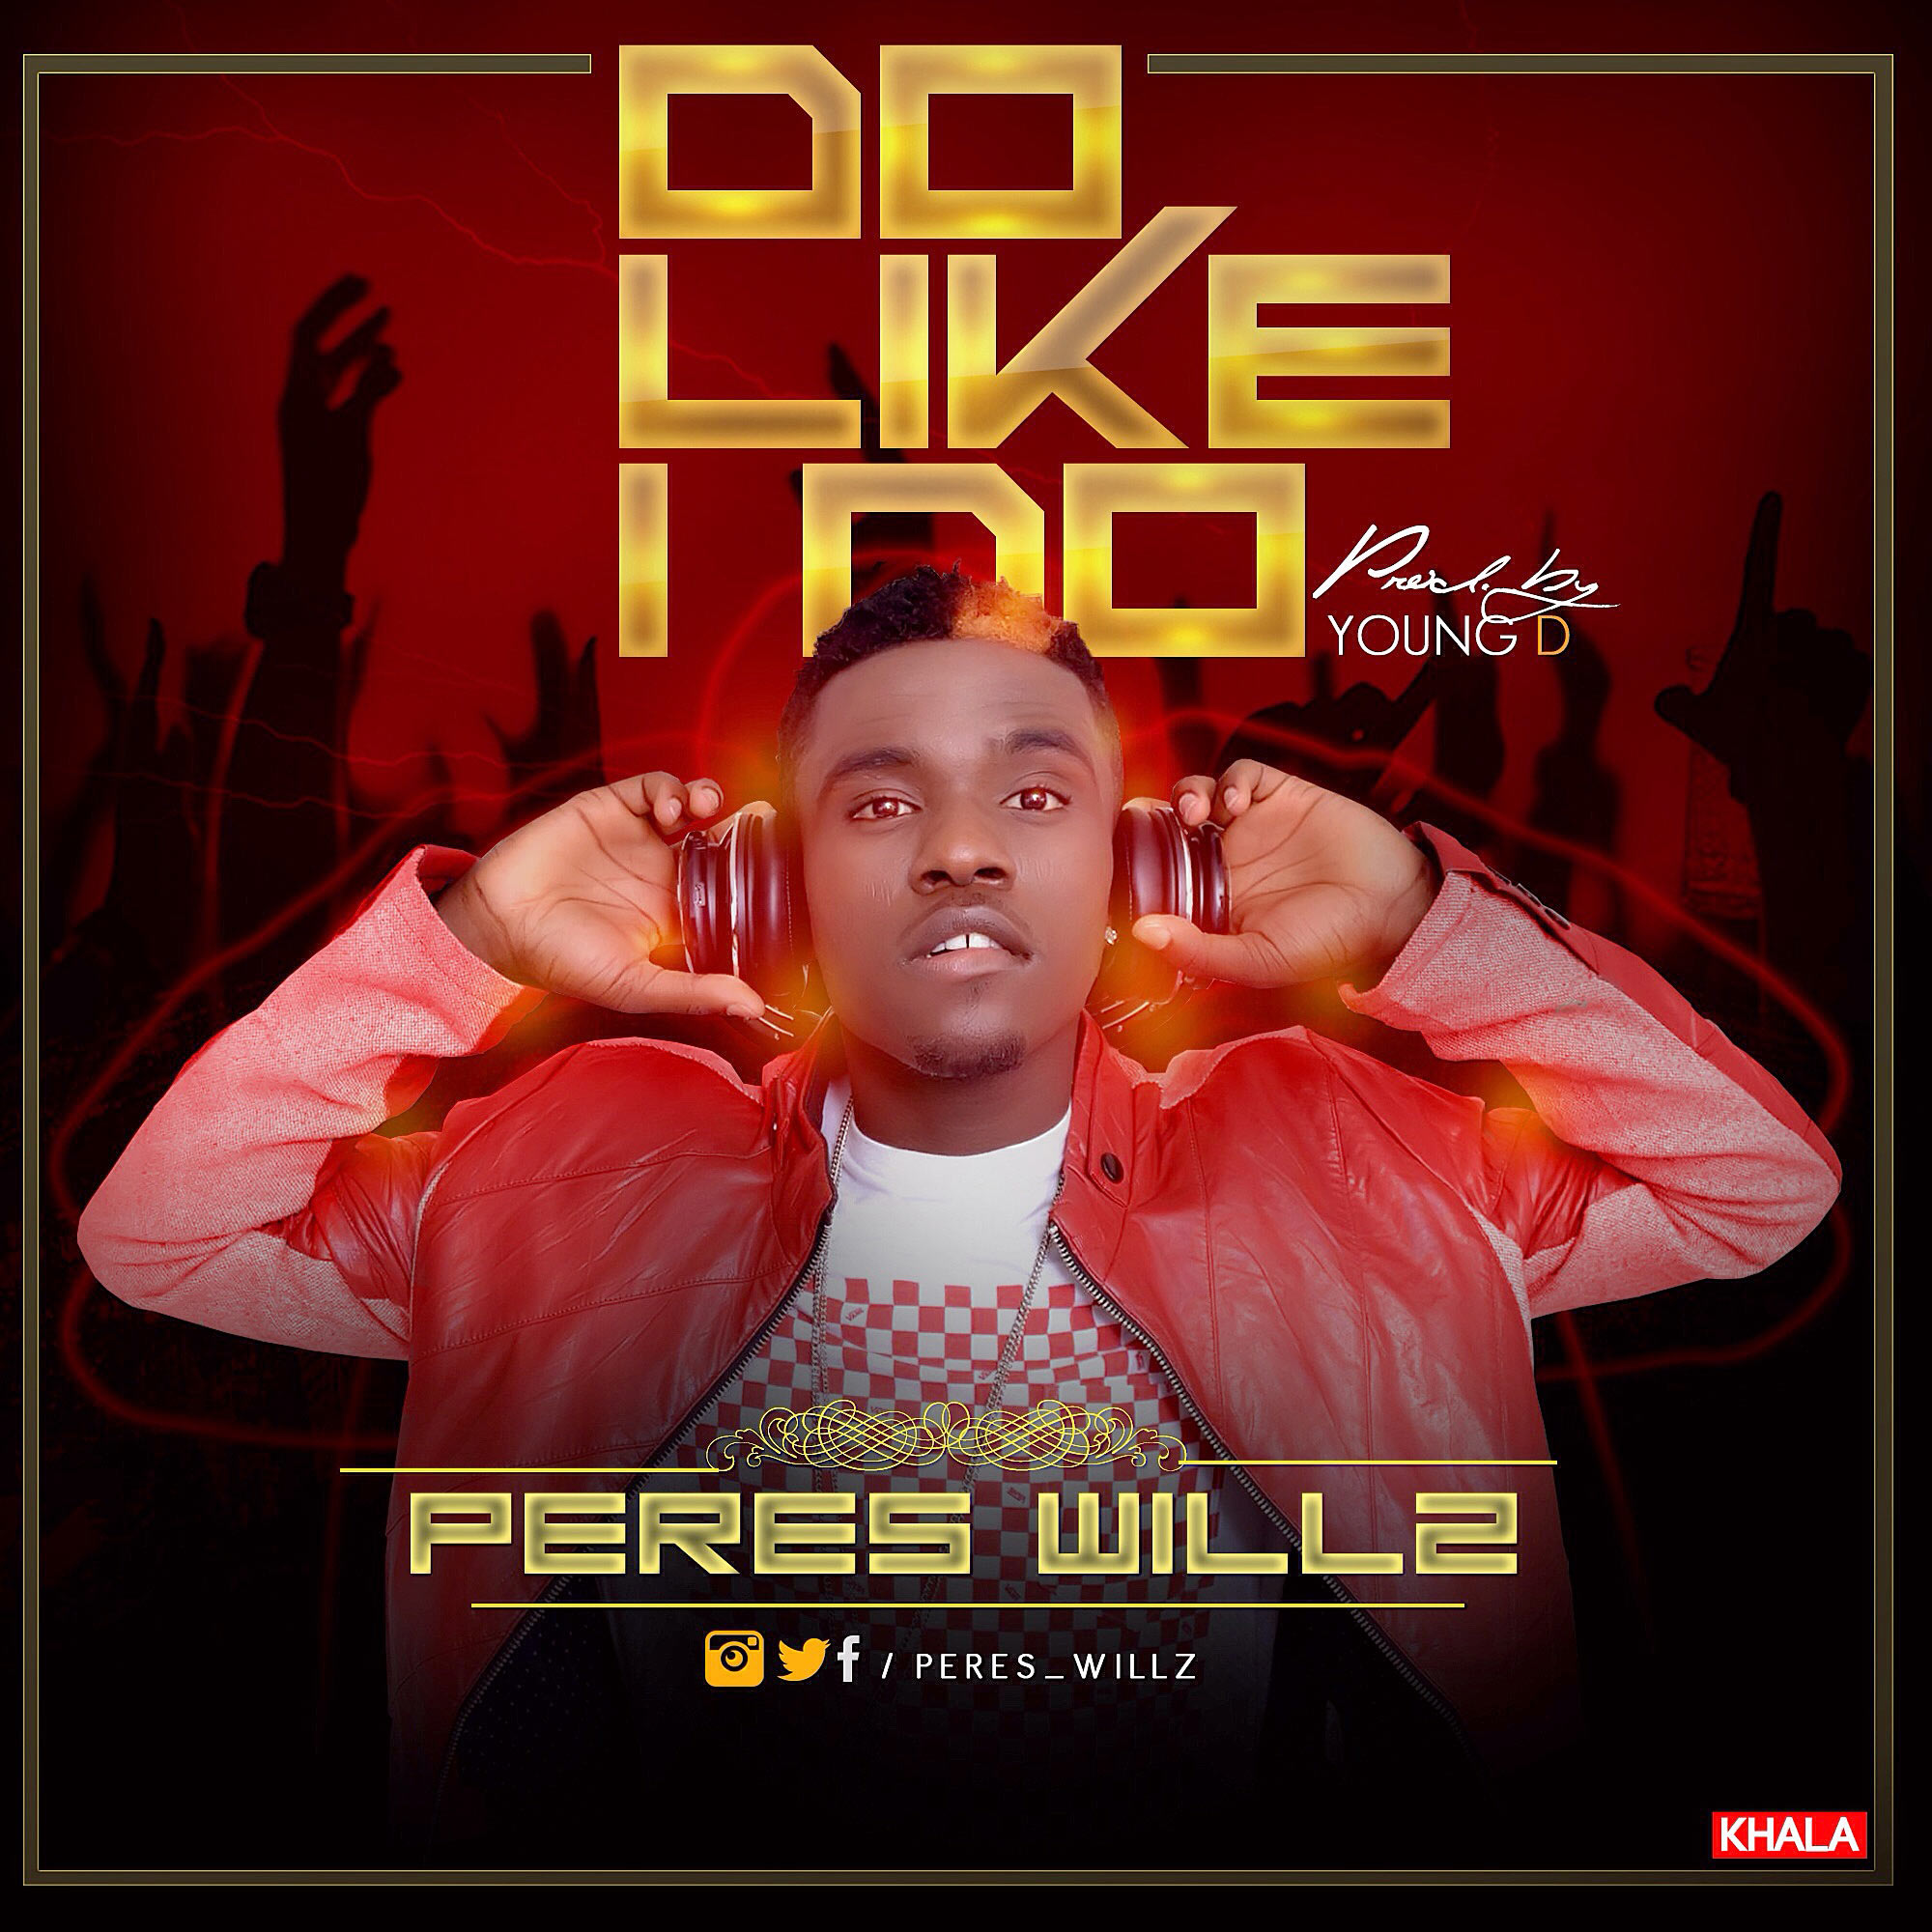 """PERES WILLZ: """"DO LIKE I DO"""" PRODUCED BY YOUNG D"""